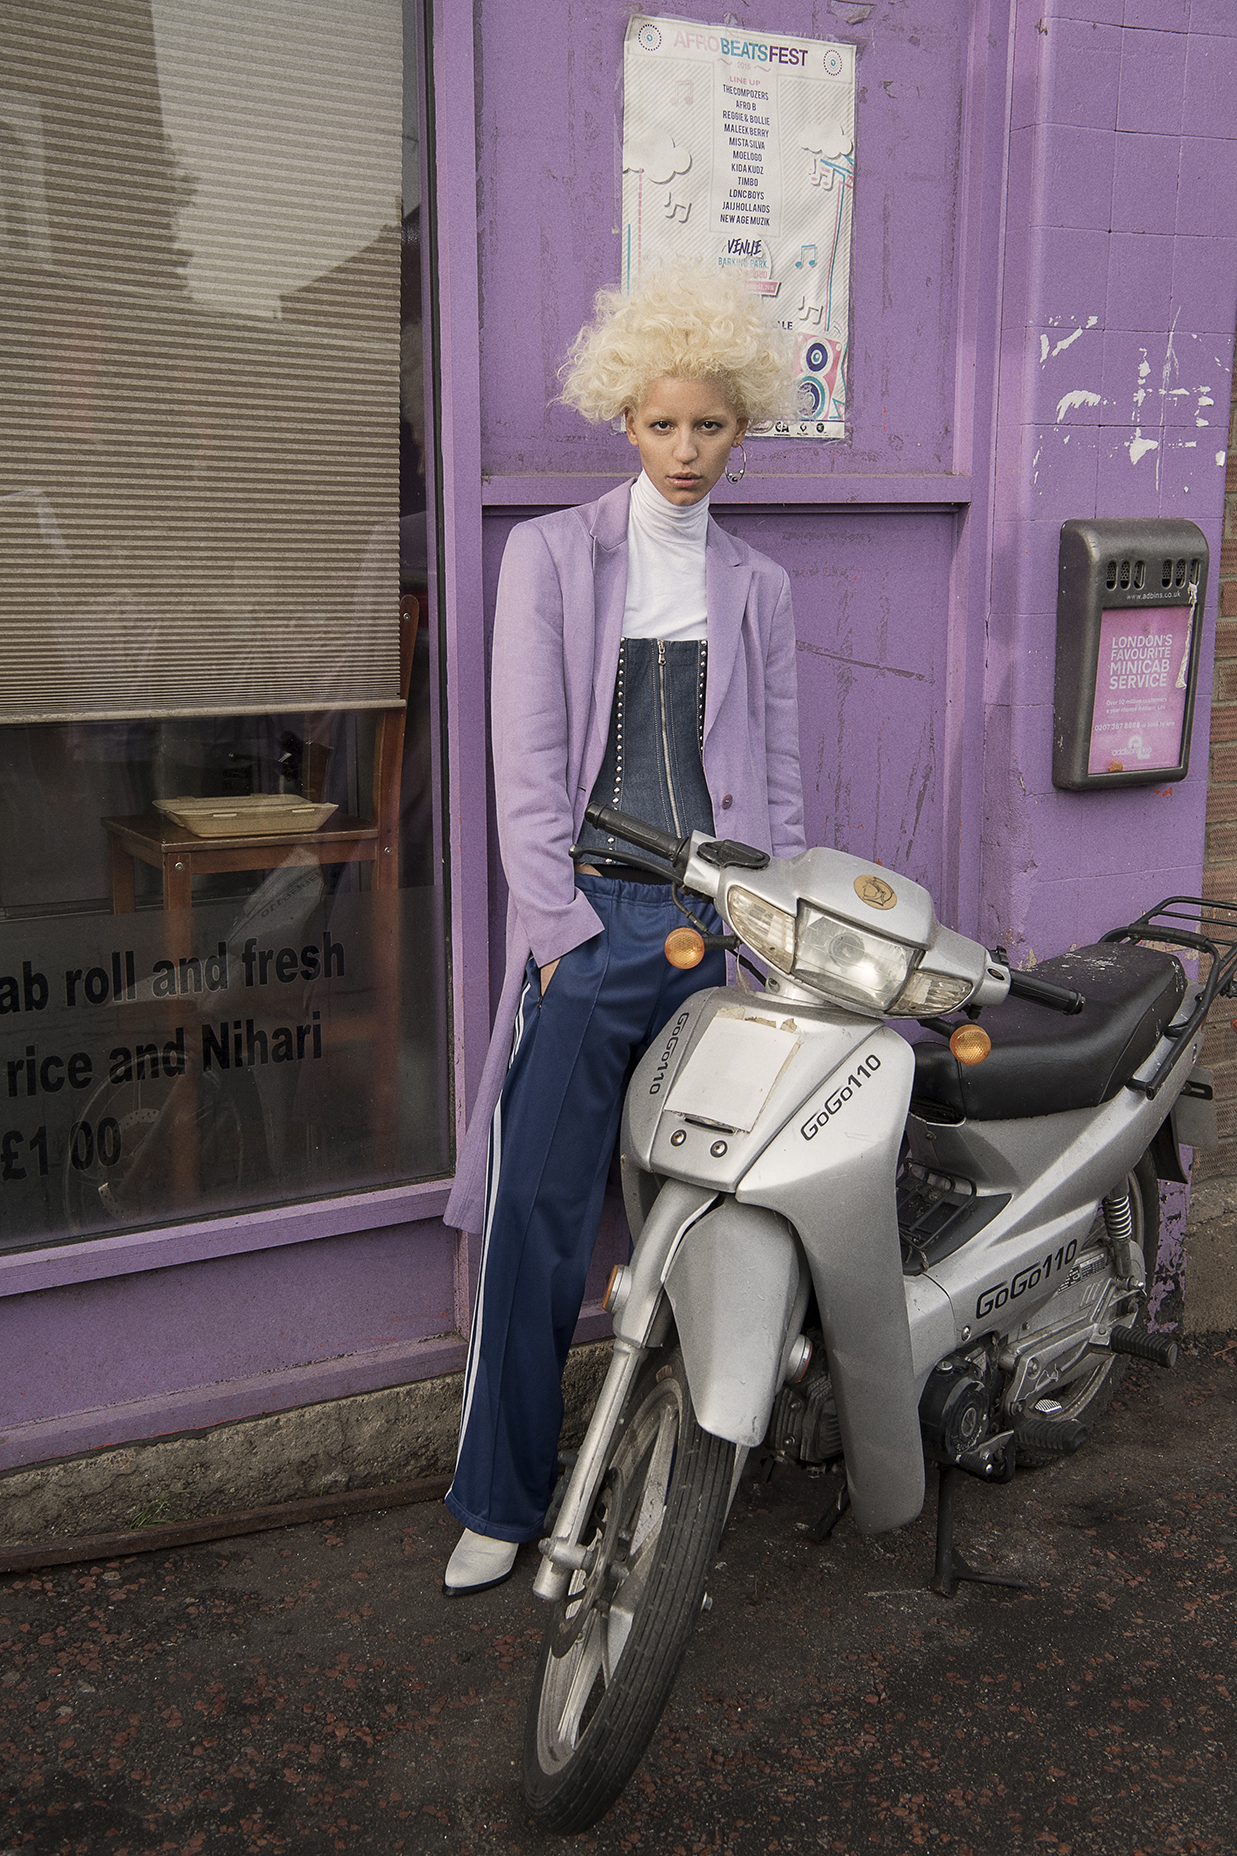 purple jacket  freckle london  corset top  dolce and gabbana  earrings  justine clenquet  shoes  robert wun